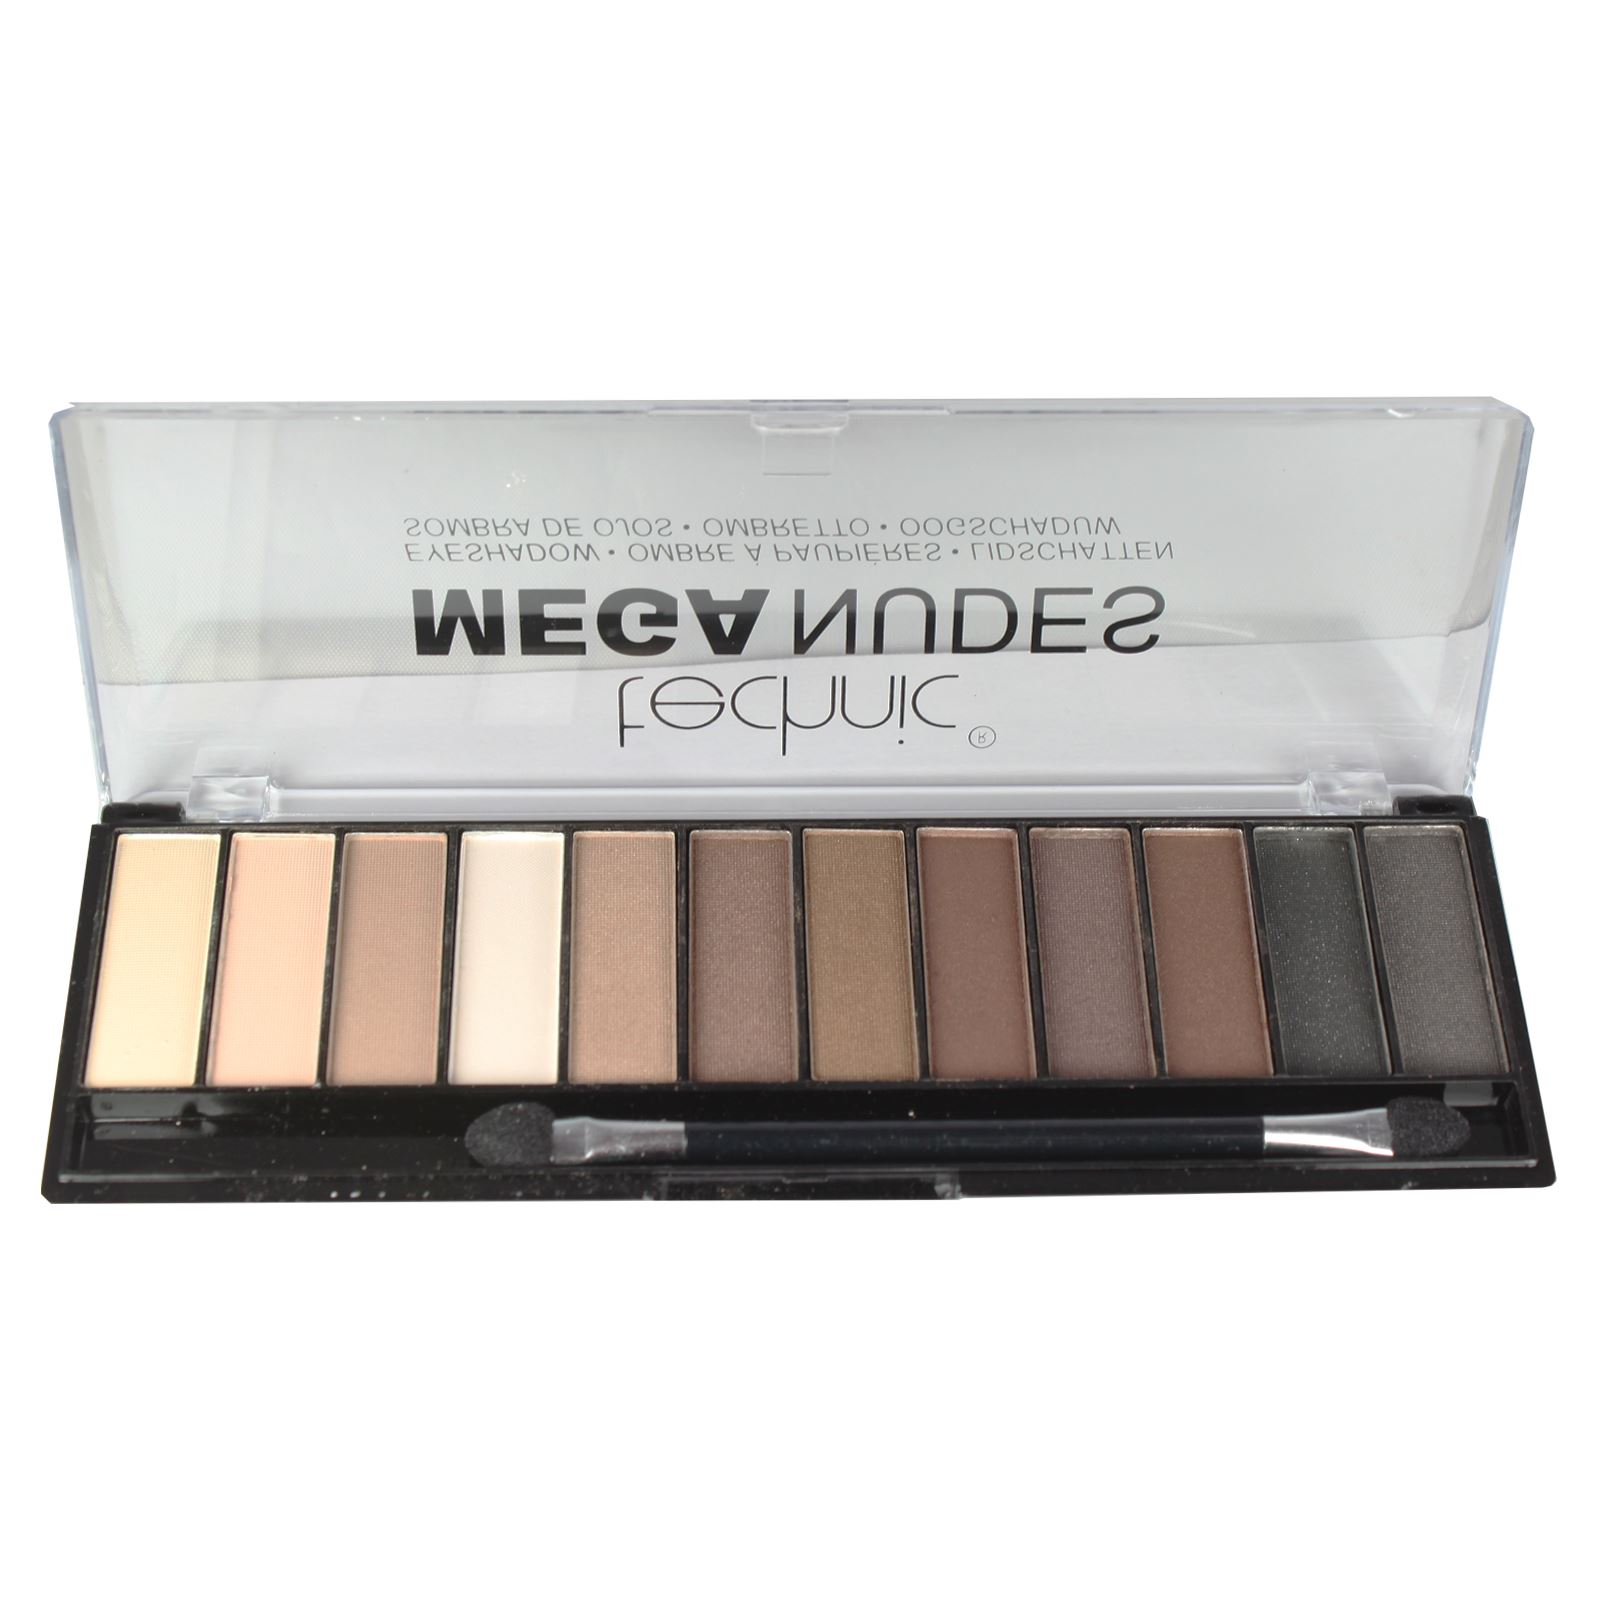 Technic-Mega-Nude-Eyeshadow-Palette-Matte-Shimmer-Pink-Bronze-Gold-Brown-Shadow